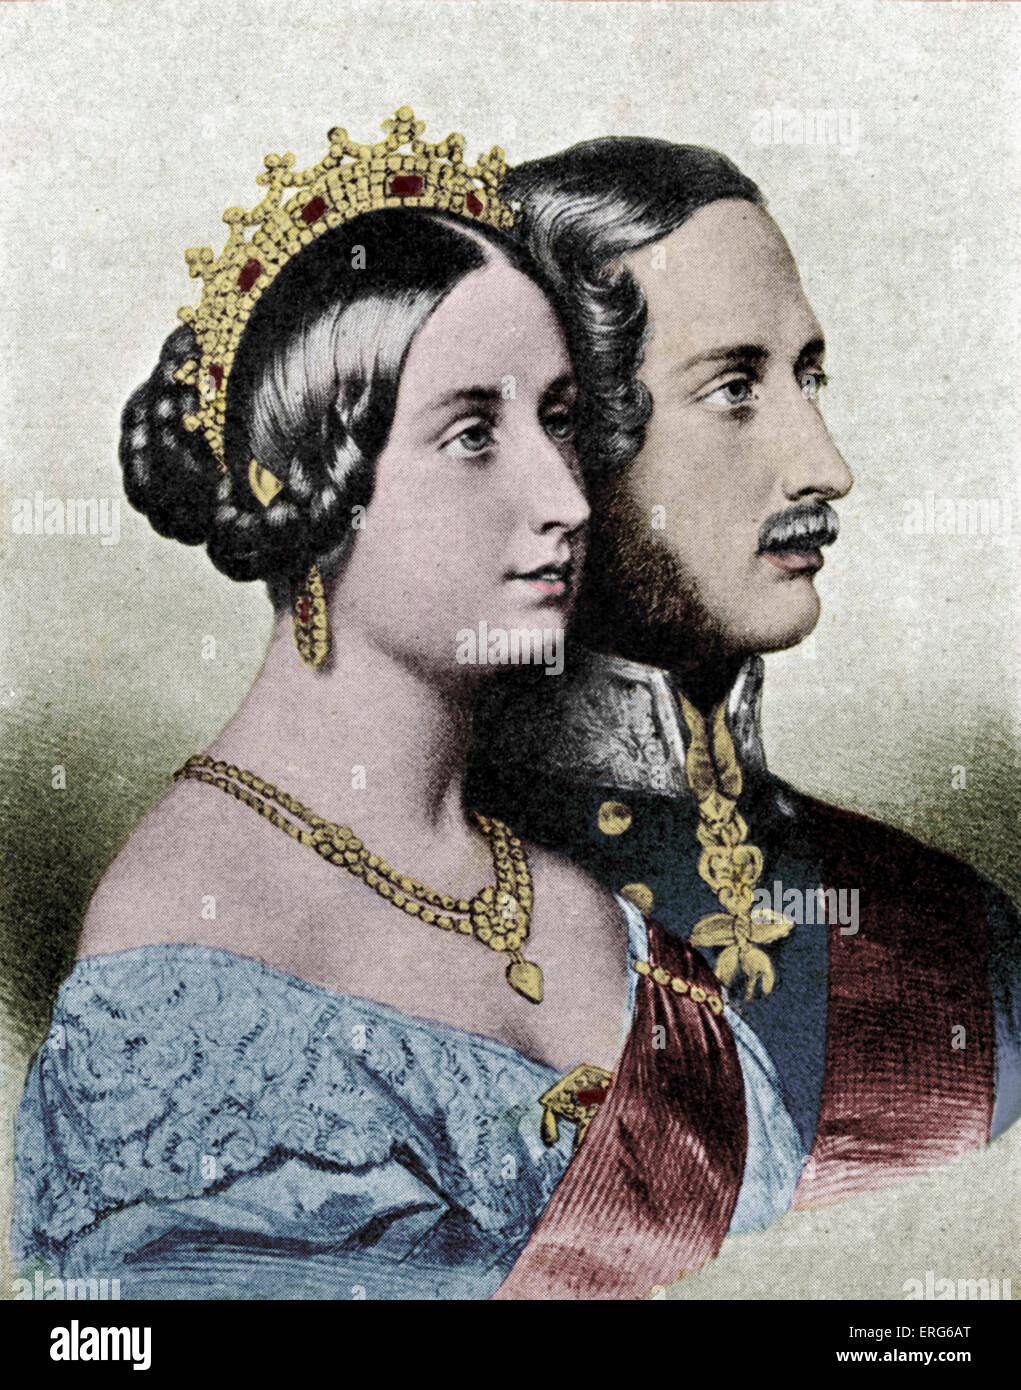 Queen Victoria and Prince Albert. Portraits in profile. - Stock Image